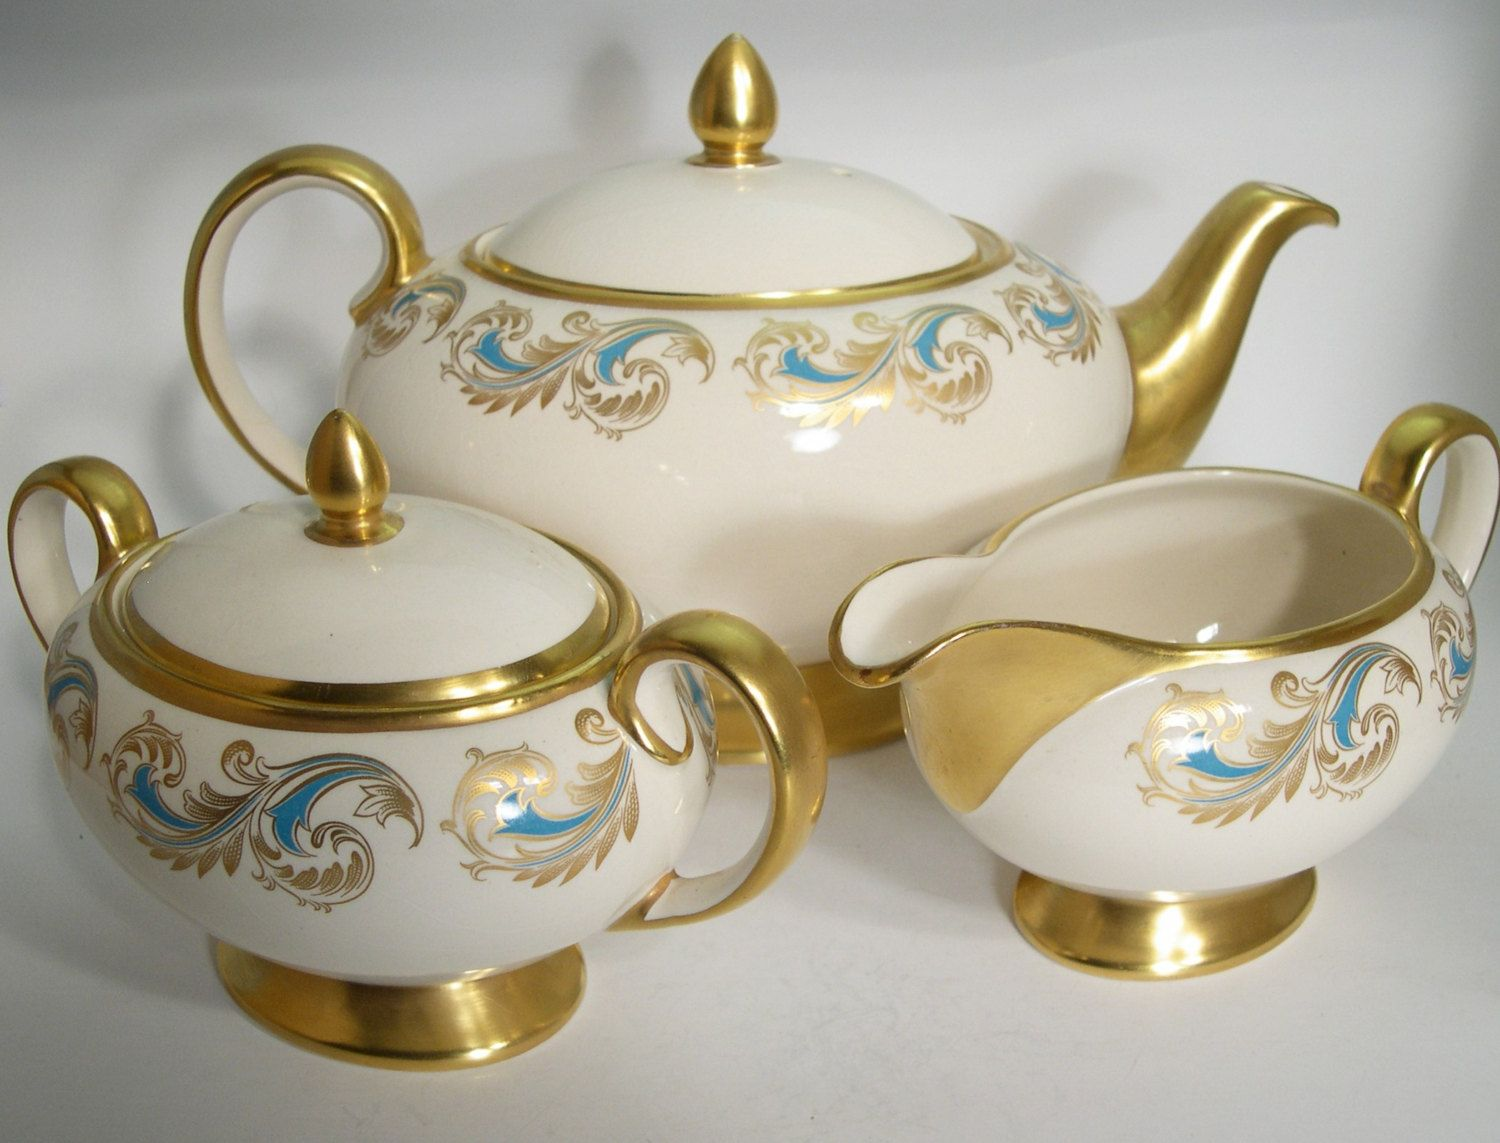 Sugar bowls with lids - Antique Sadler Teapot Set Vintage Teapot With Creamer And Sugar Bowl With Lid Ivory